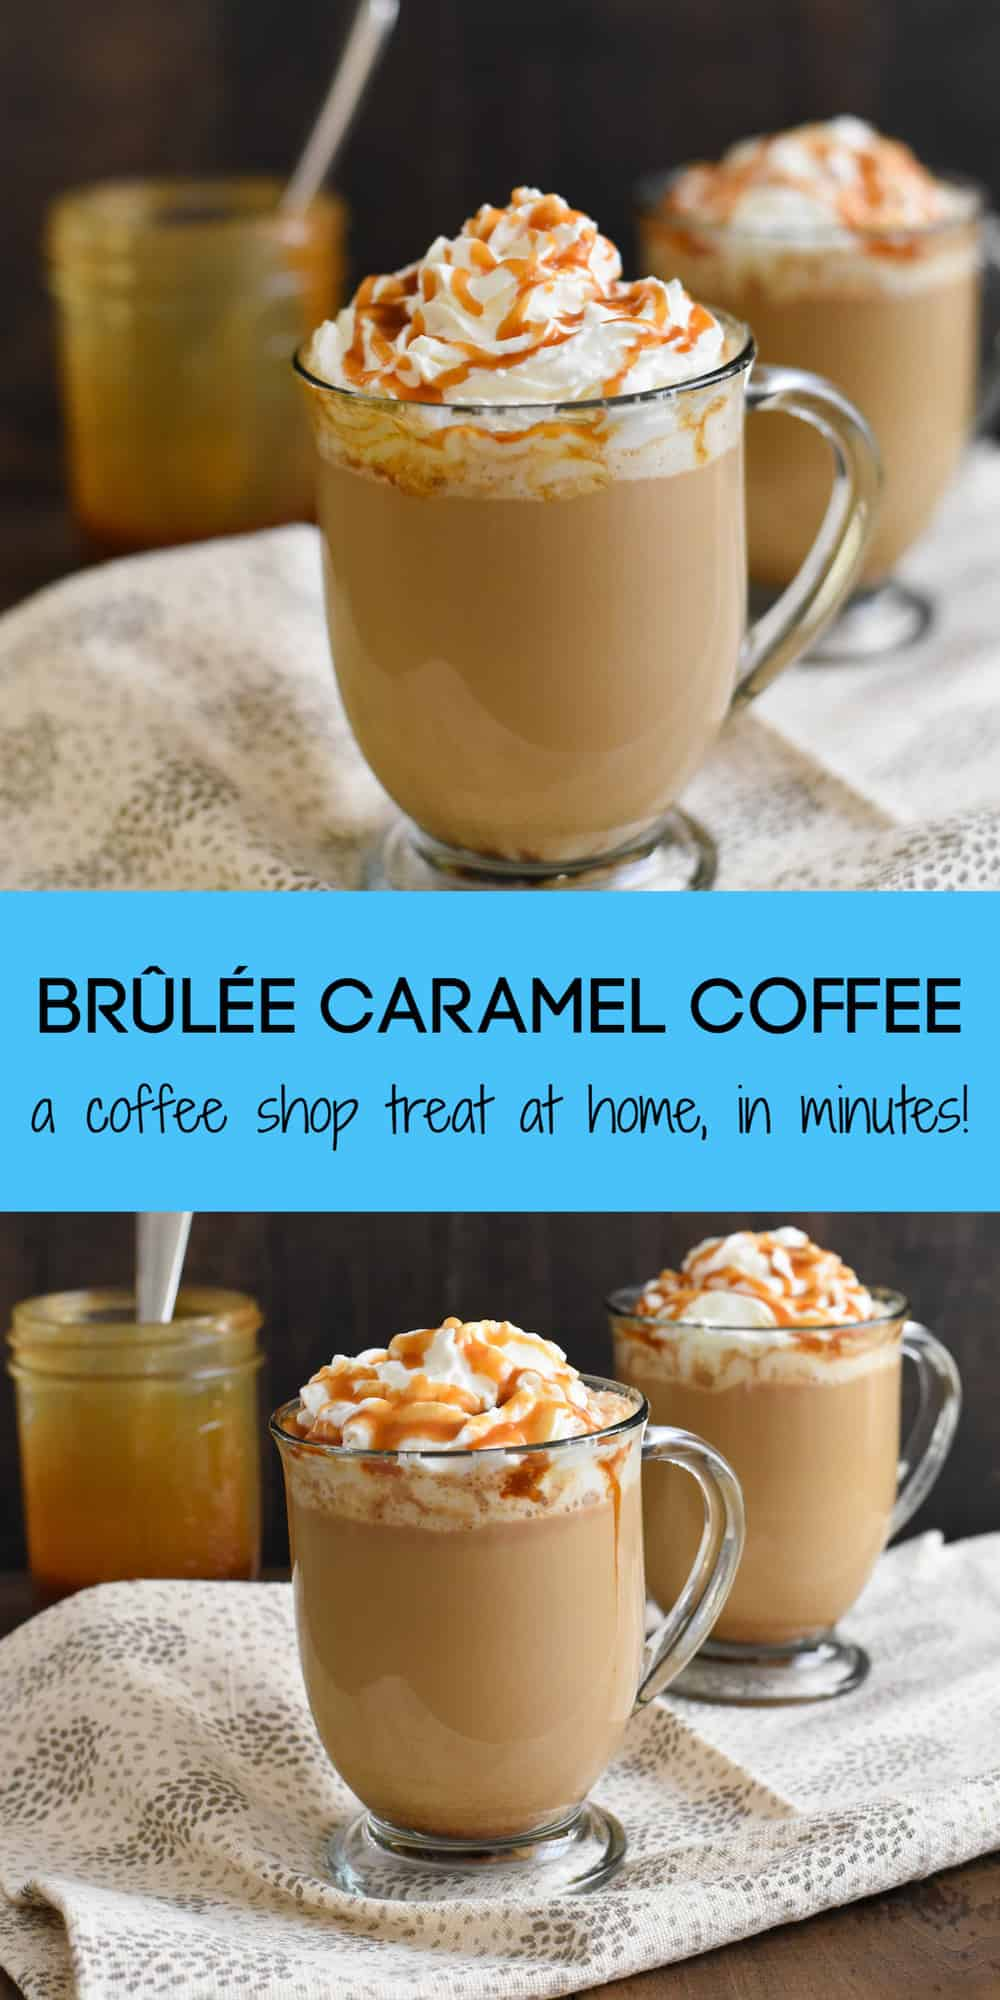 Brûlée Caramel Coffee - Make a coffeehouse-style drink at home in just minutes! Coffee, milk, caramel sauce and a touch of brown sugar come together to make a sweet caramel coffee treat! | foxeslovelemons.com